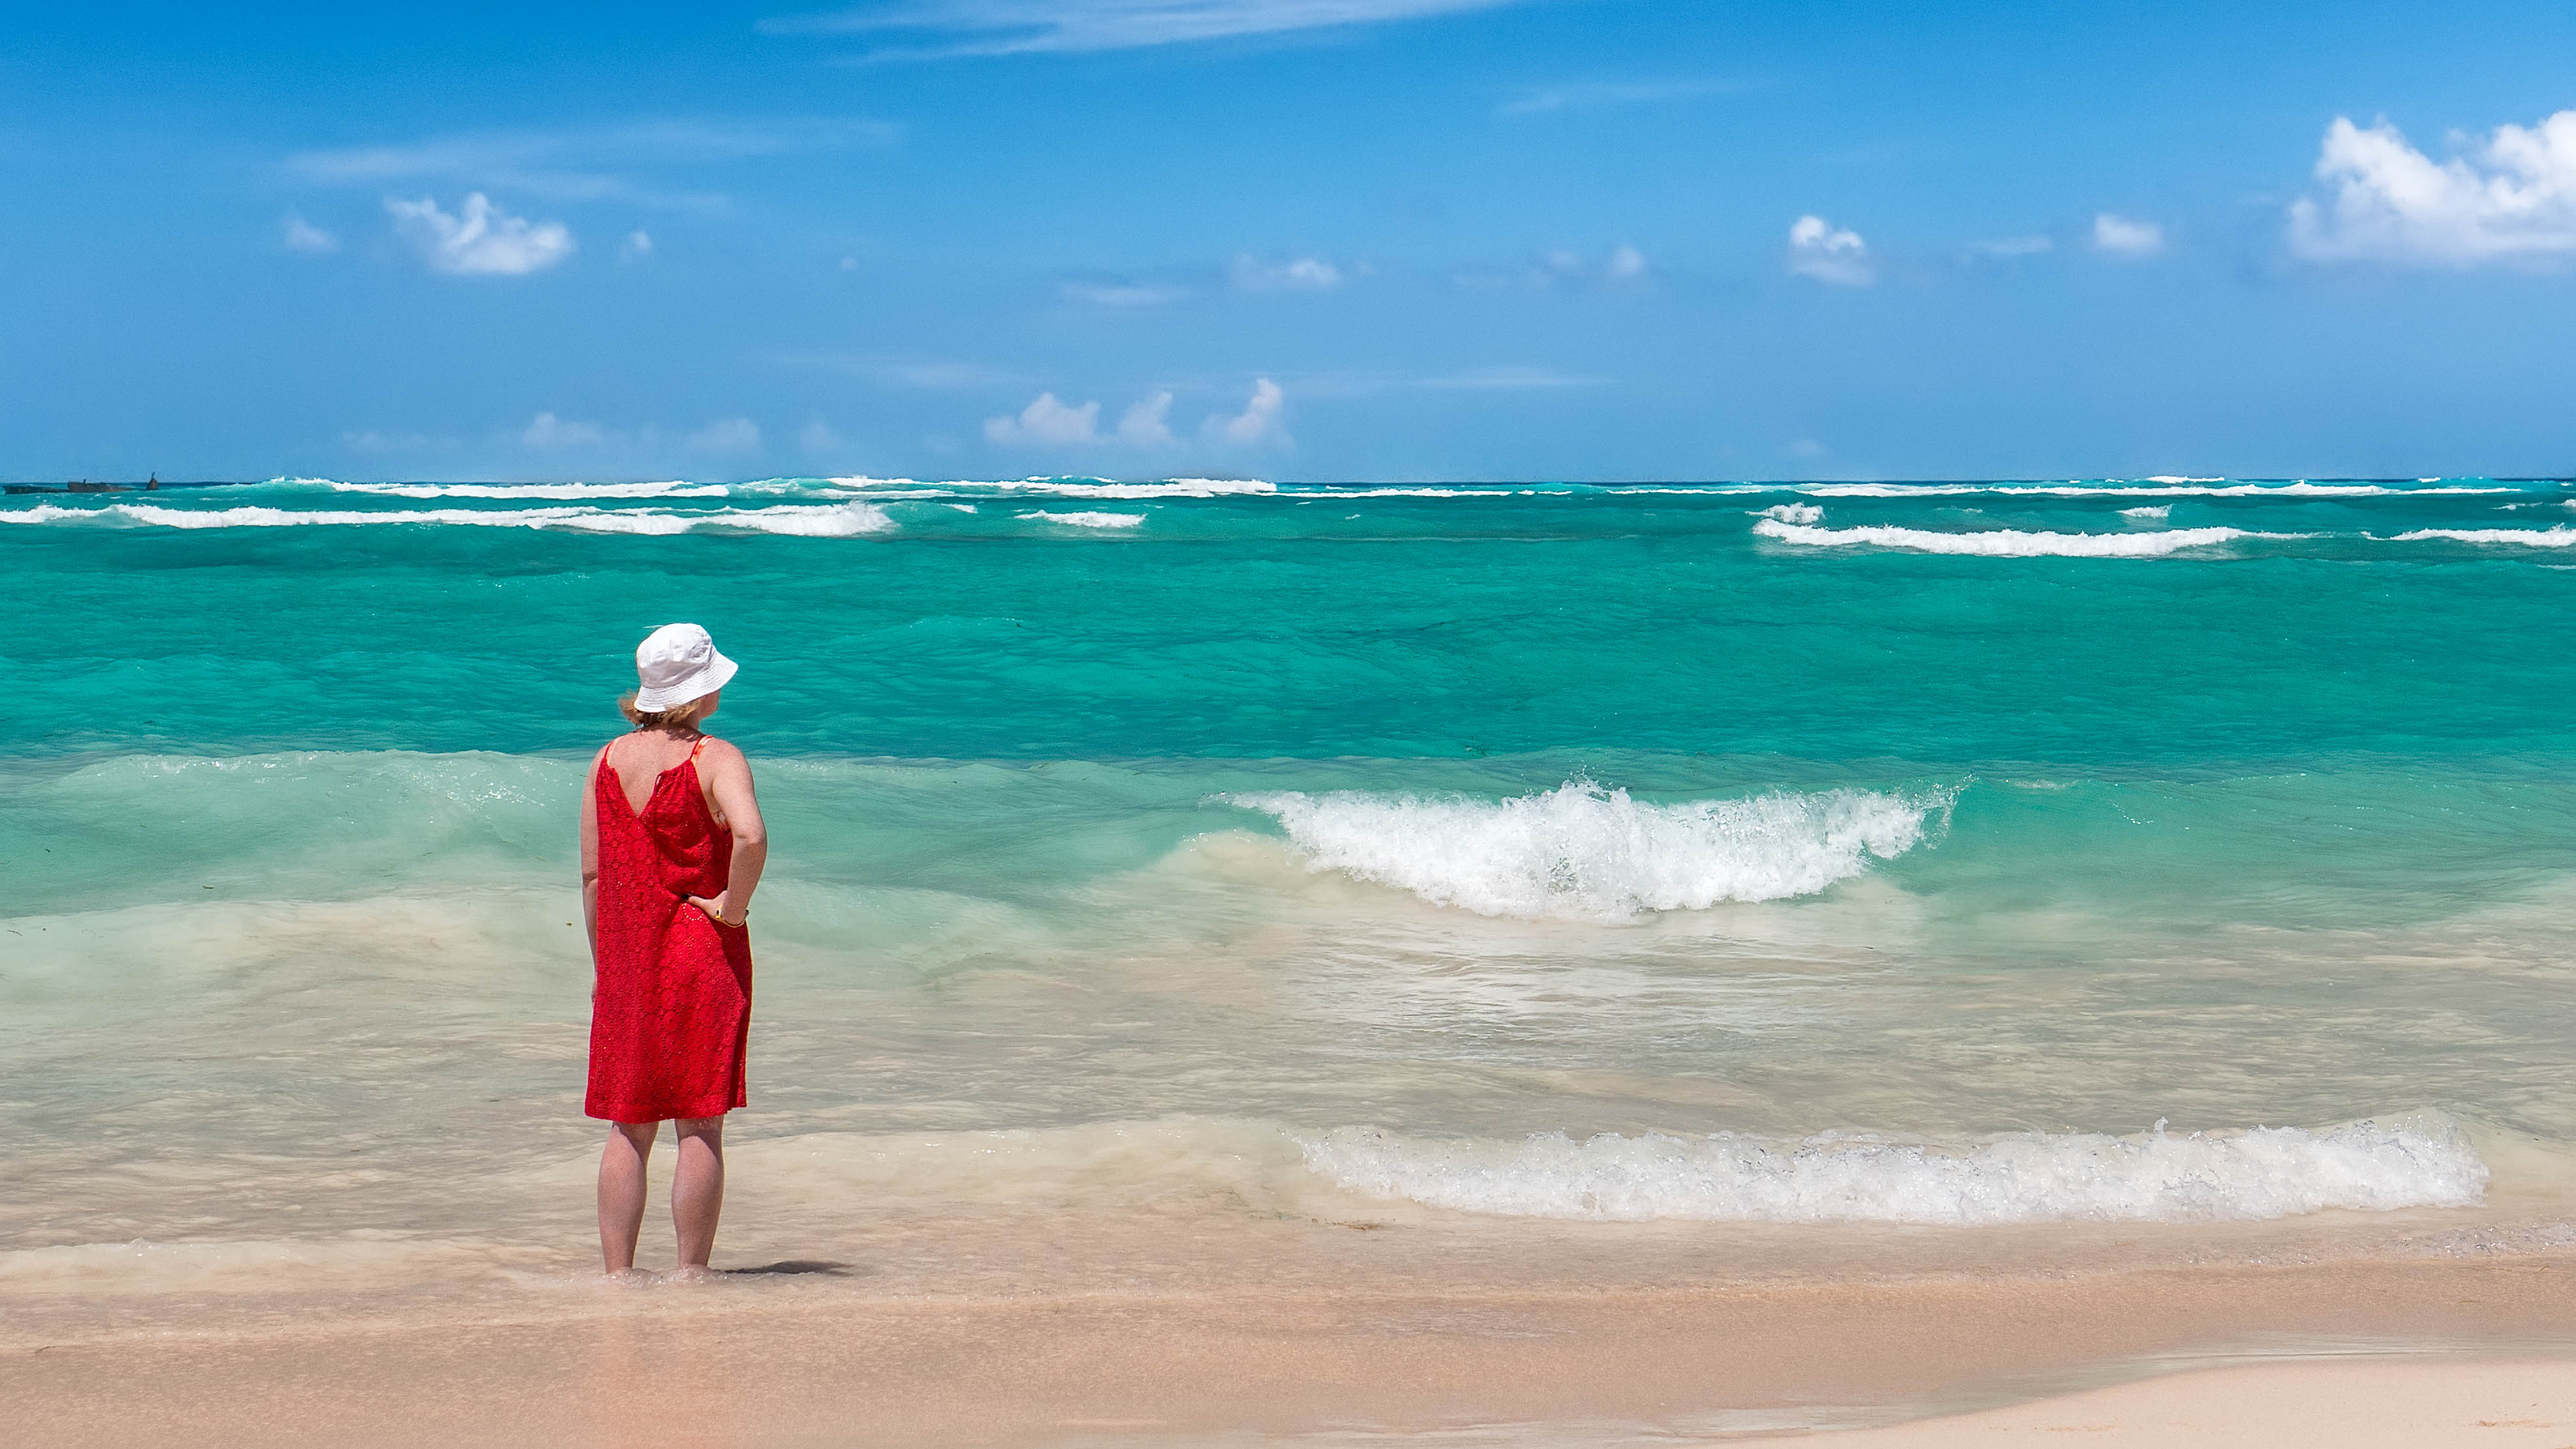 Red, white and blue, Bavaro, Outdoor, Seaside, Sea, HQ Photo